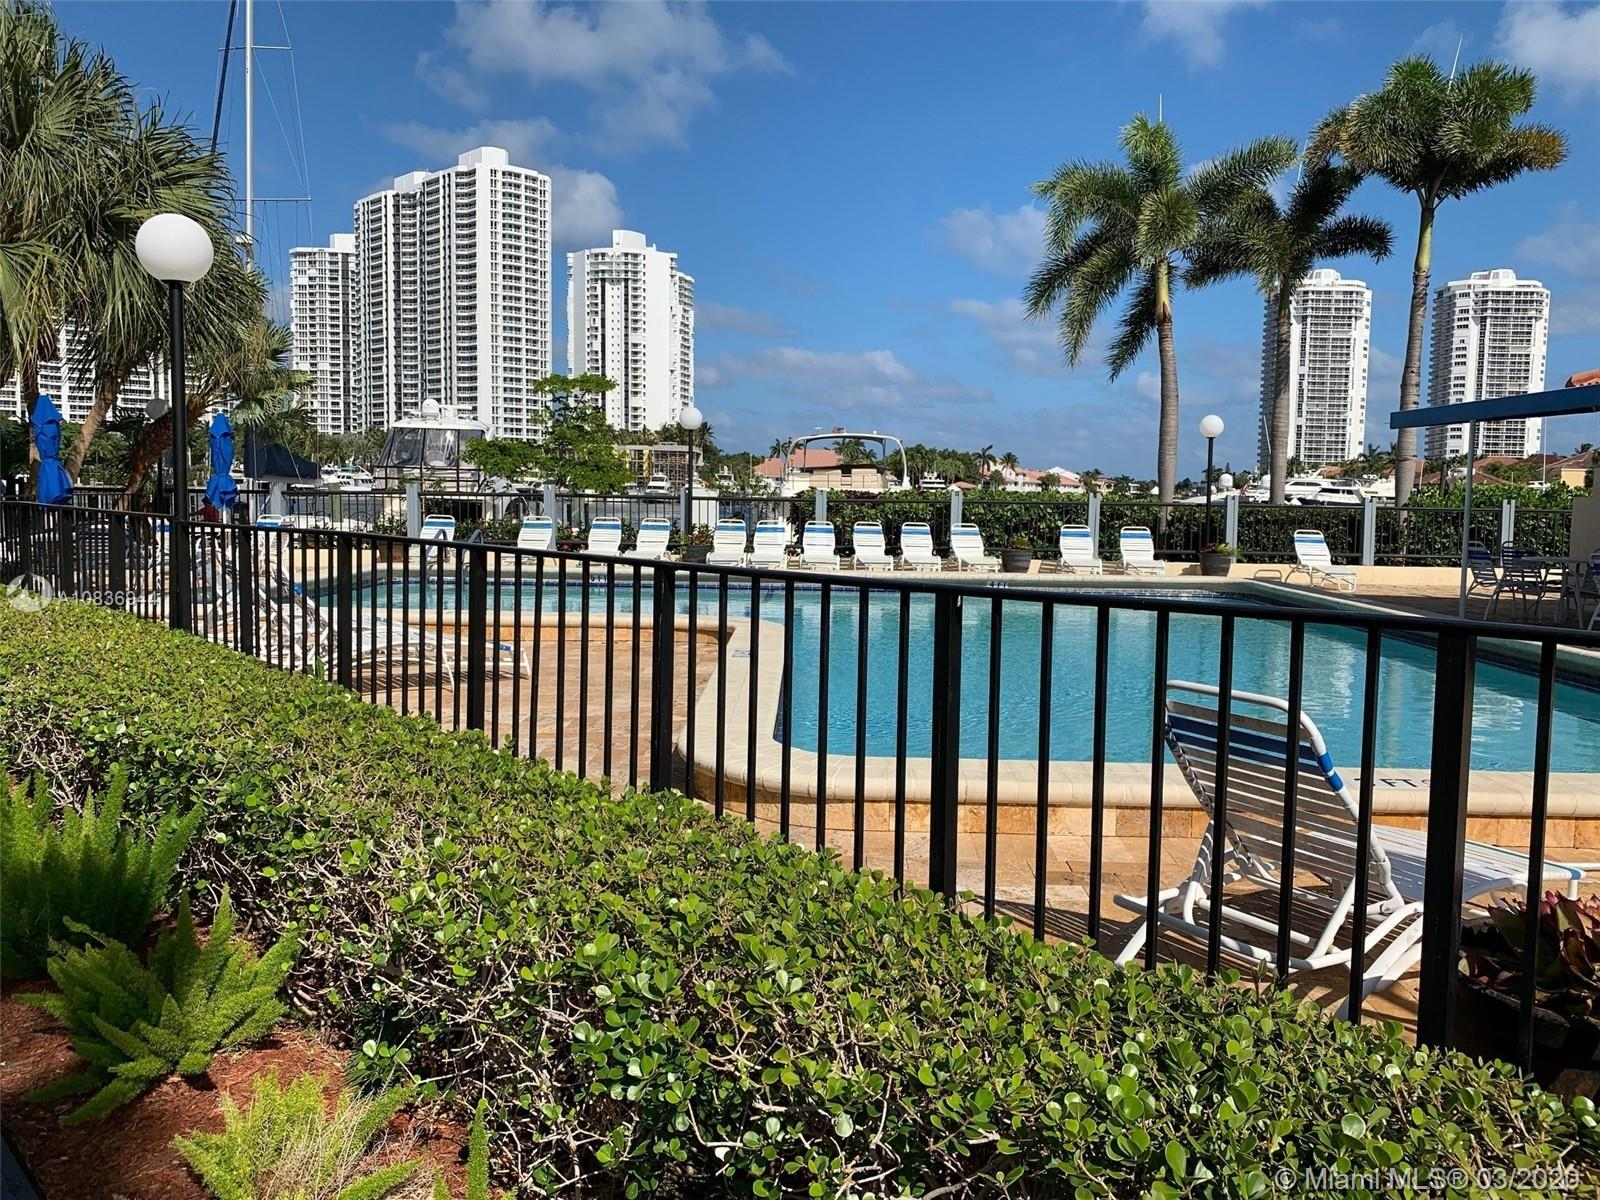 VACANT AND READY TO MOVE RIGHT IN! A RARELY AVAILABLE ONE BEDROOM, 2 FULL BATH CONDO IN MARINER VILL